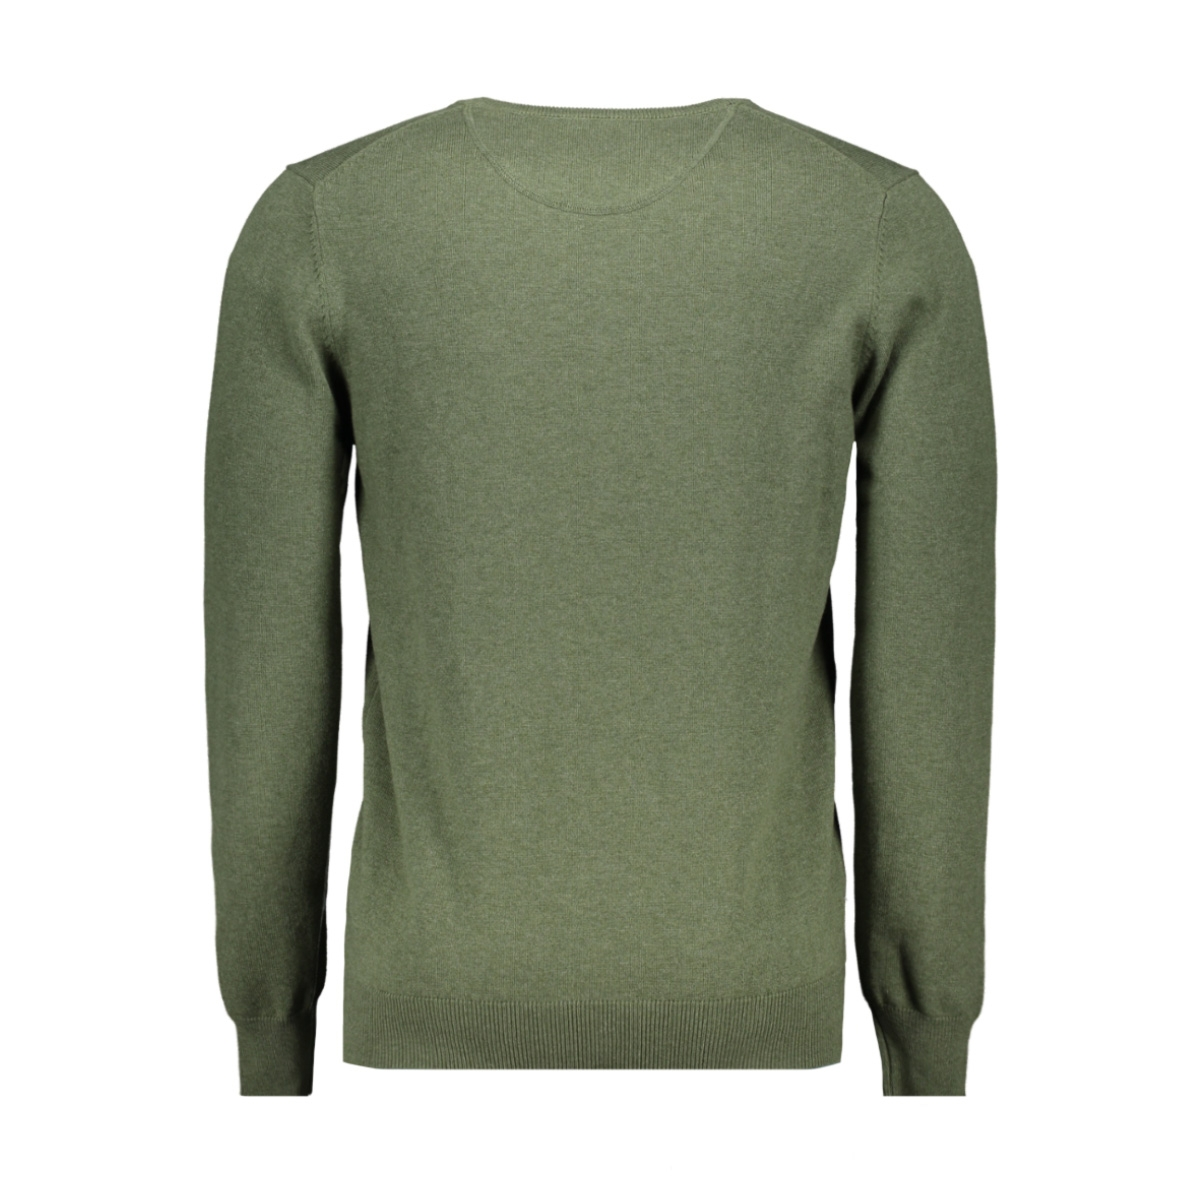 classic pullover v hals 044530 campbell trui 003 donkergroen